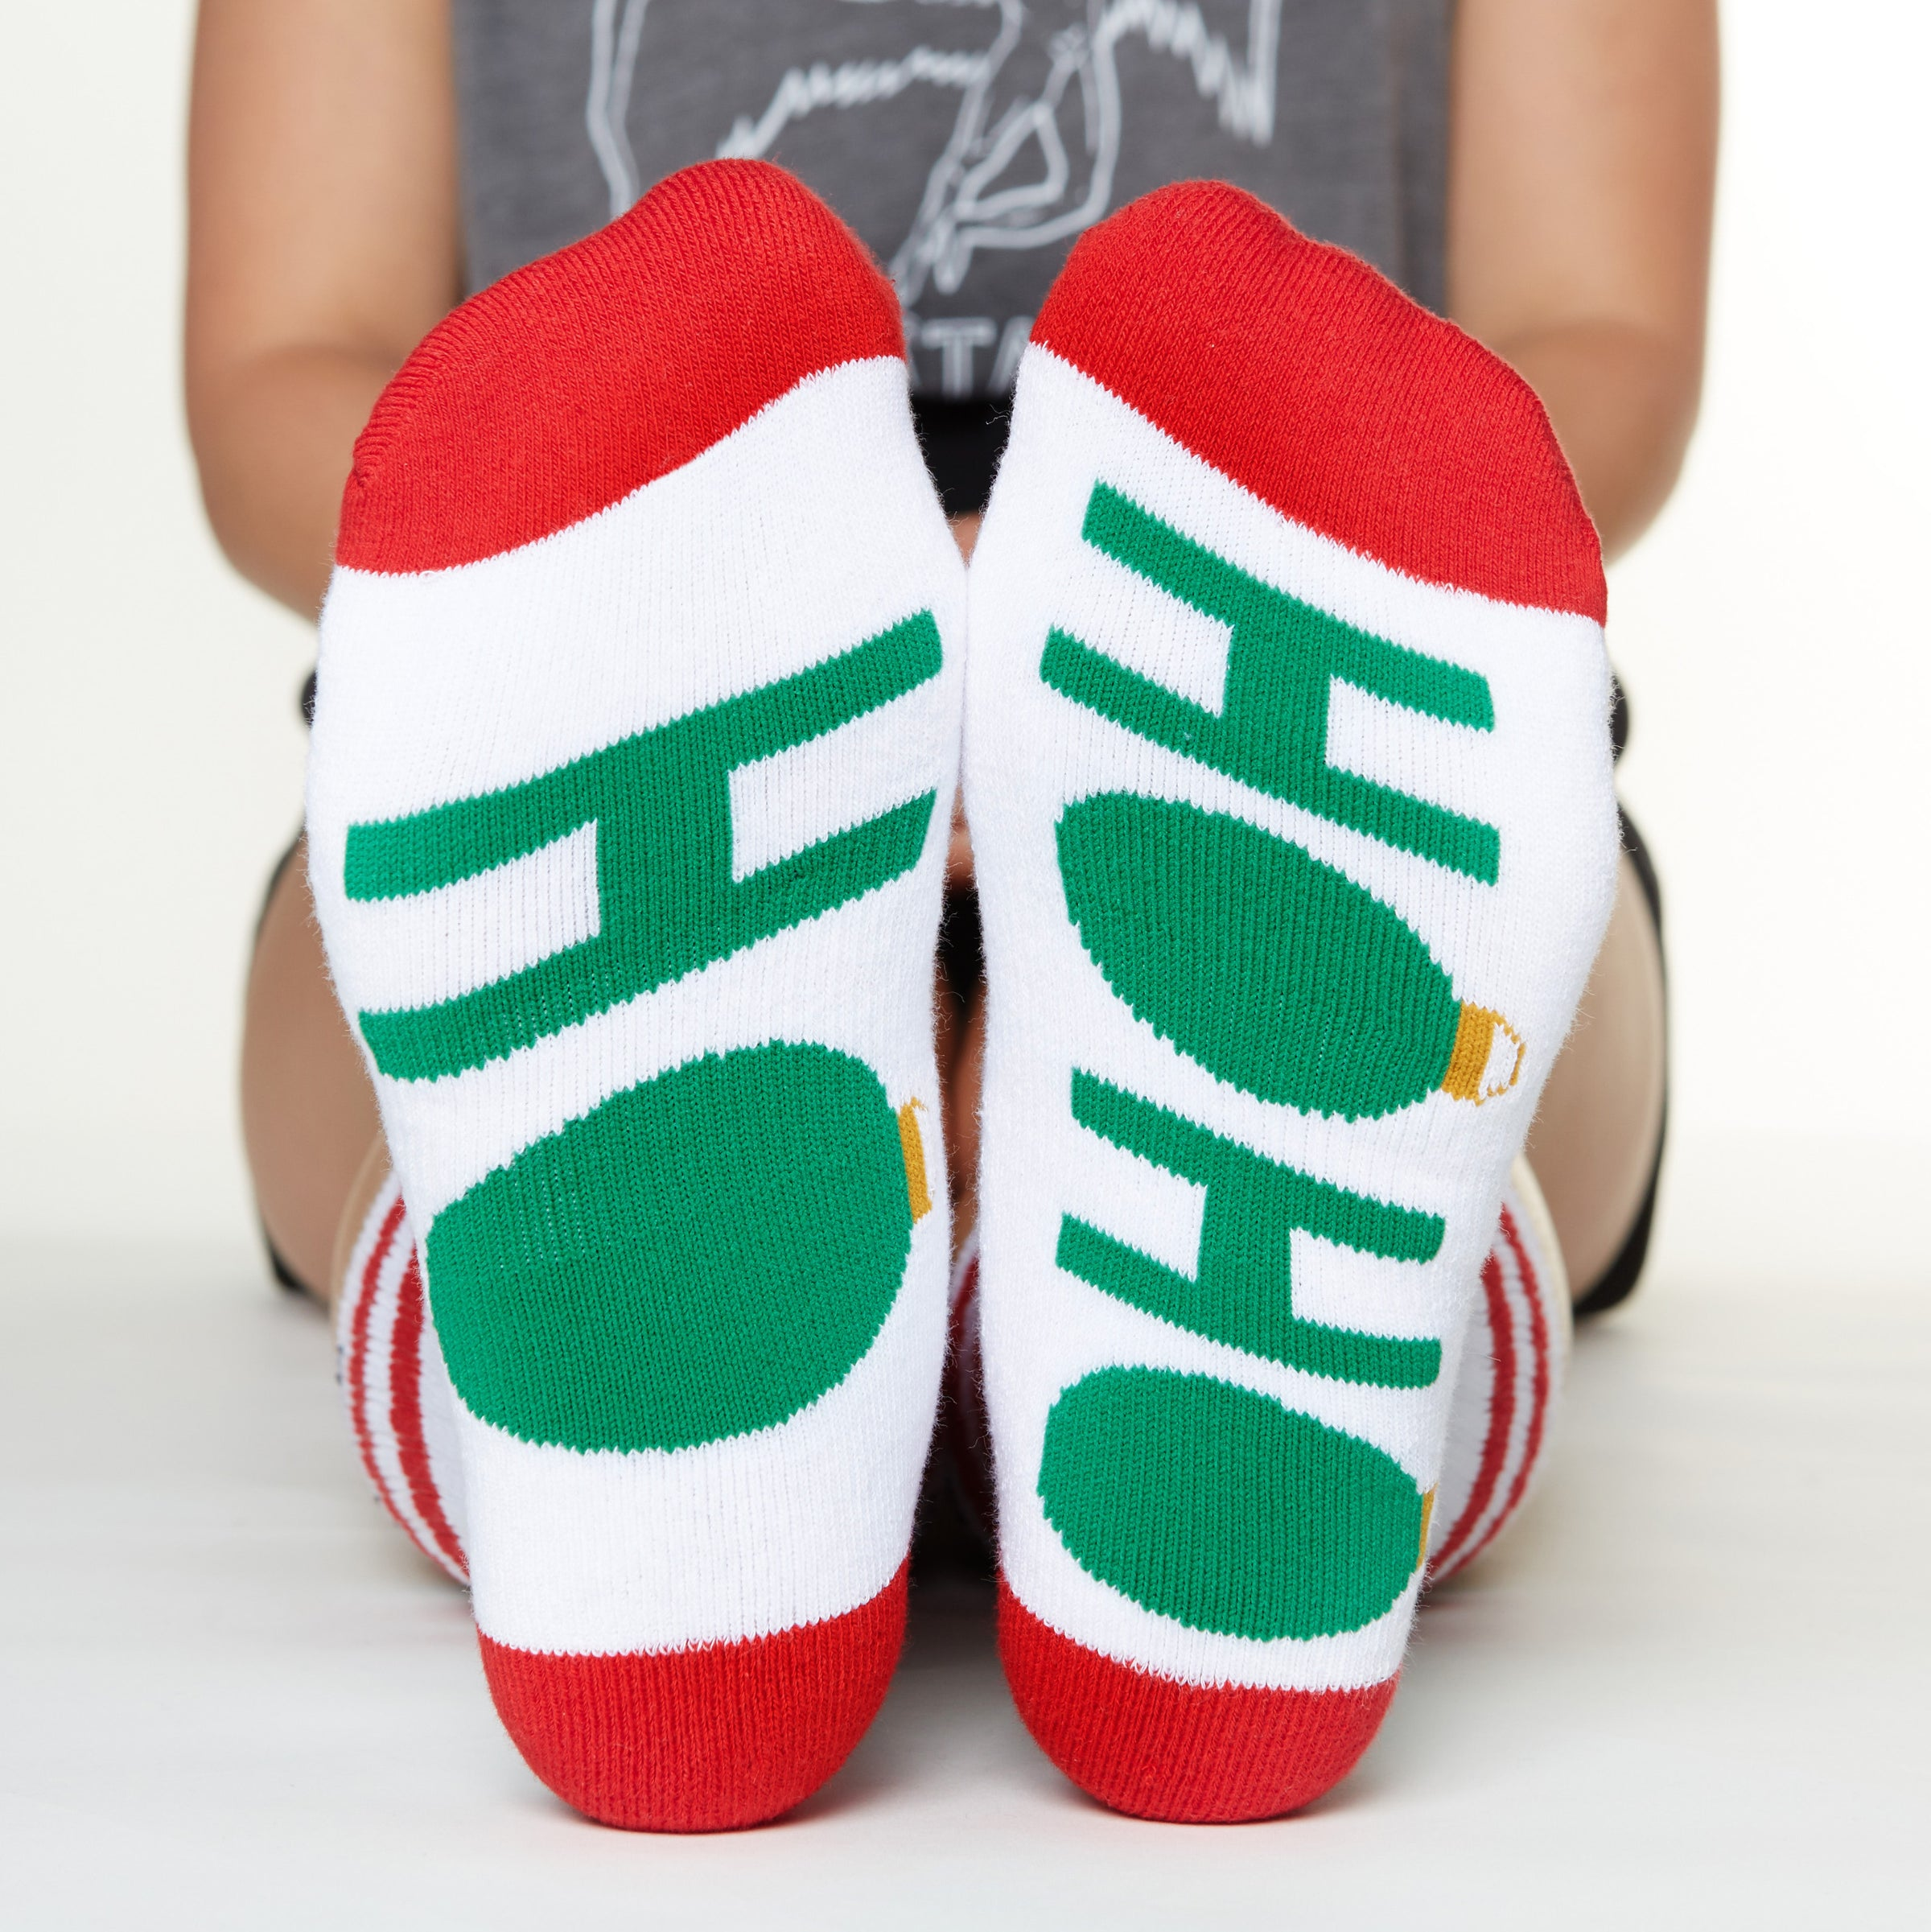 Ho Ho Ho socks bottom front view